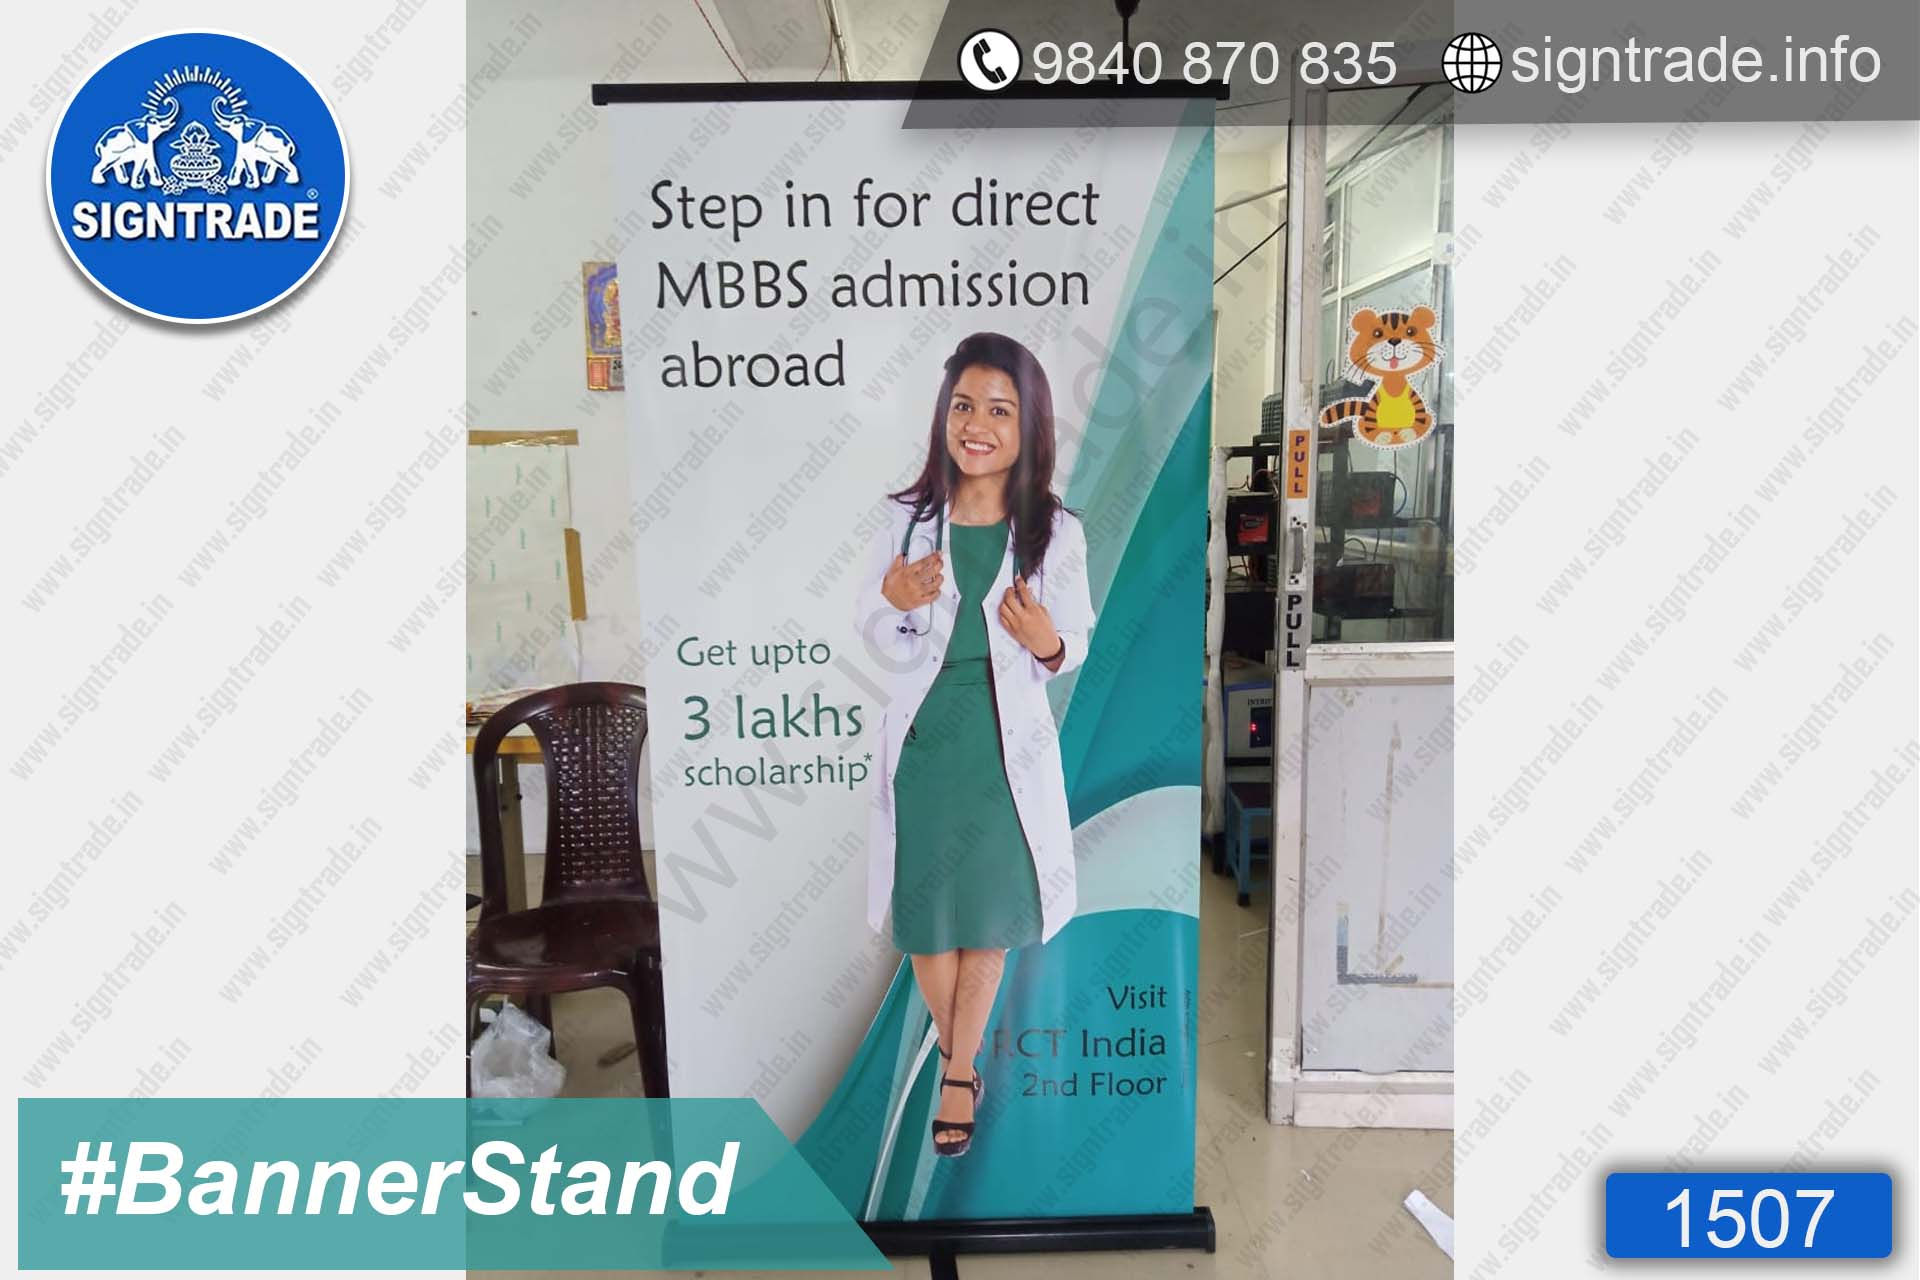 MBBS Admission Abroad, Chennai - SIGNTRADE - Digital Printing Services - Roll Up Banner Stand Manufacturer in Chennai